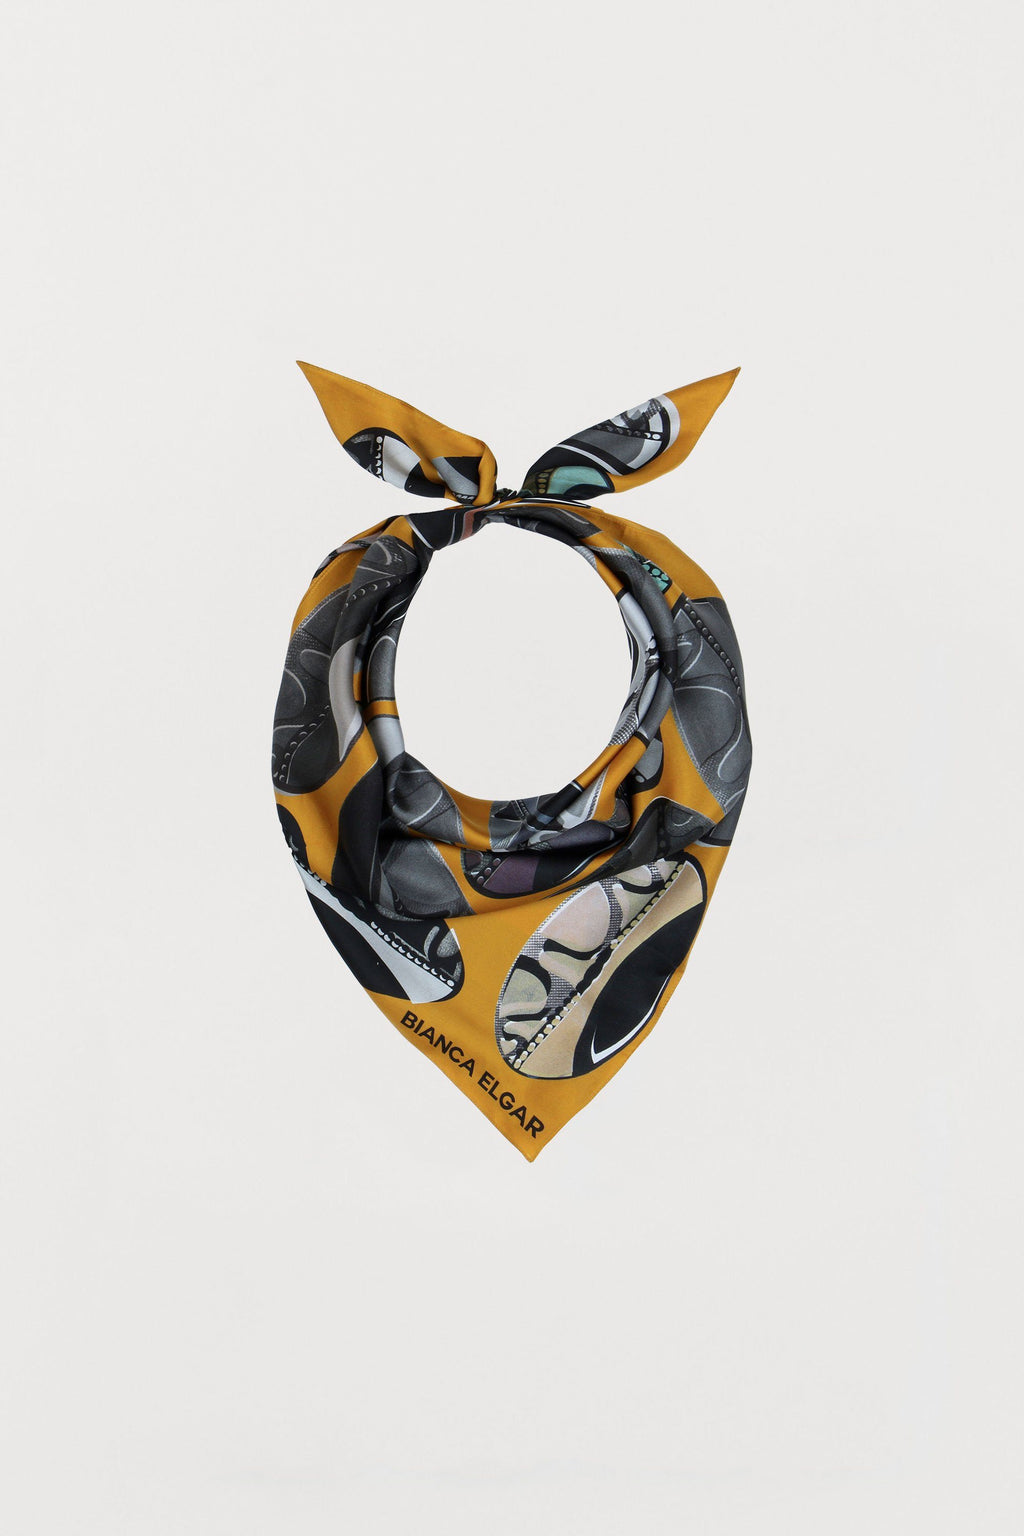 Ochre Beads Silk Scarf - Medium - Bianca Elgar